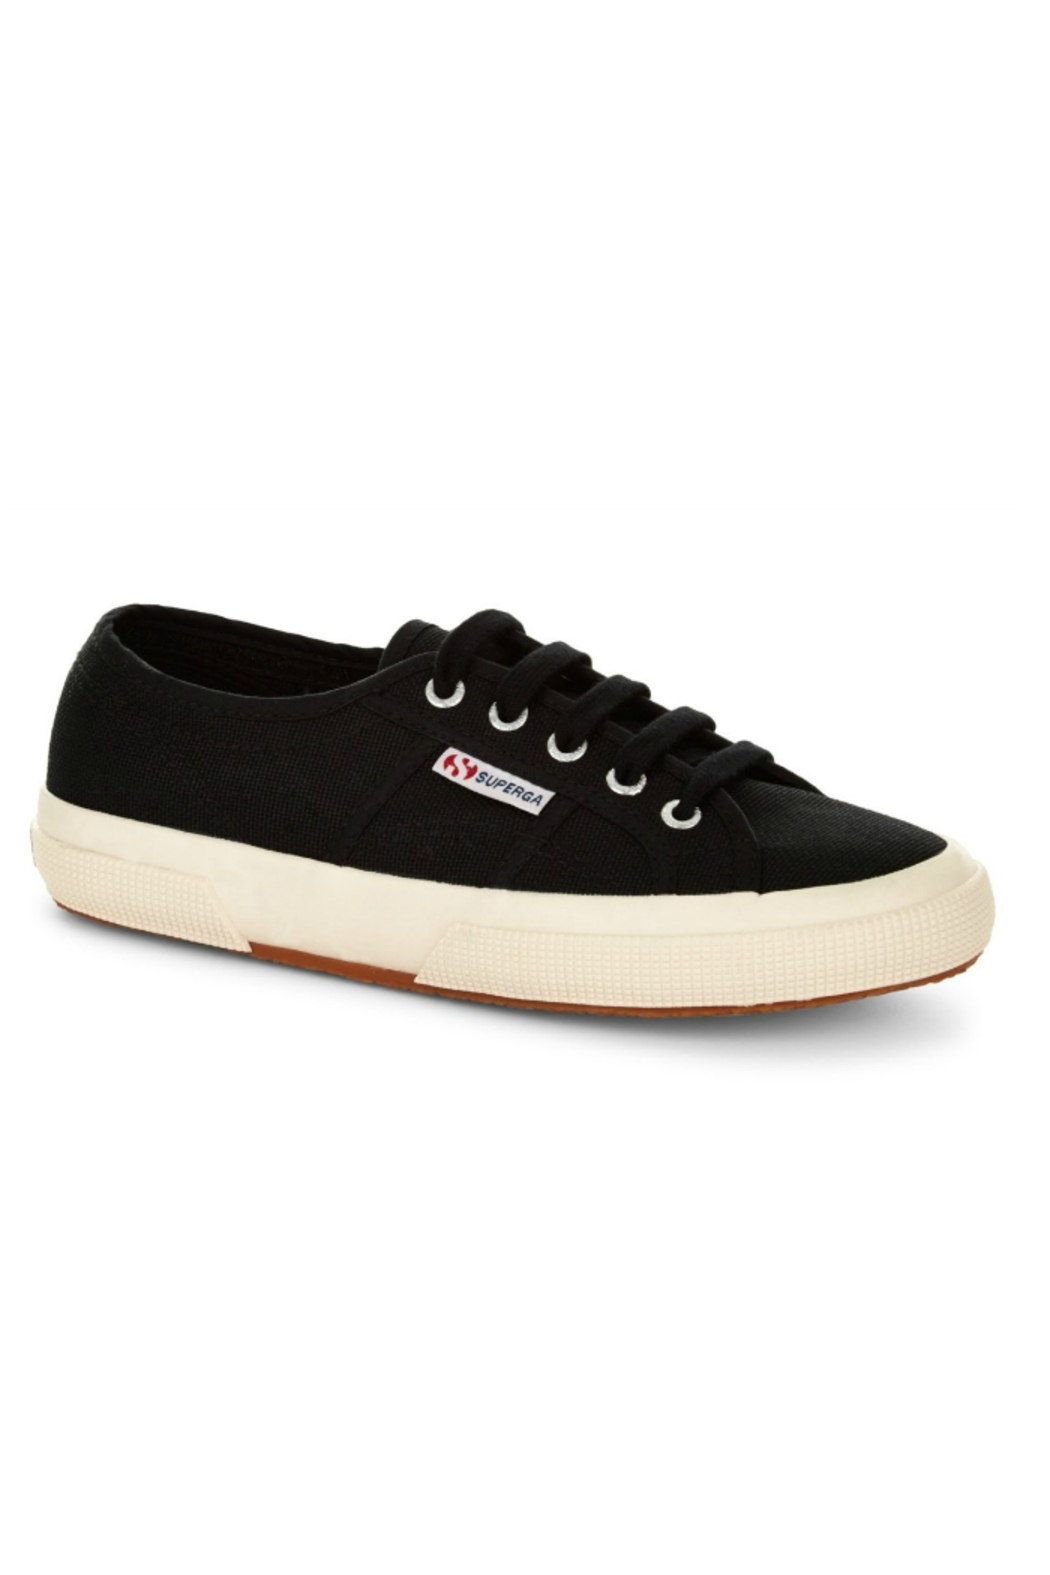 Superga Women's  2750 Cotu Classic - Front Cropped Image